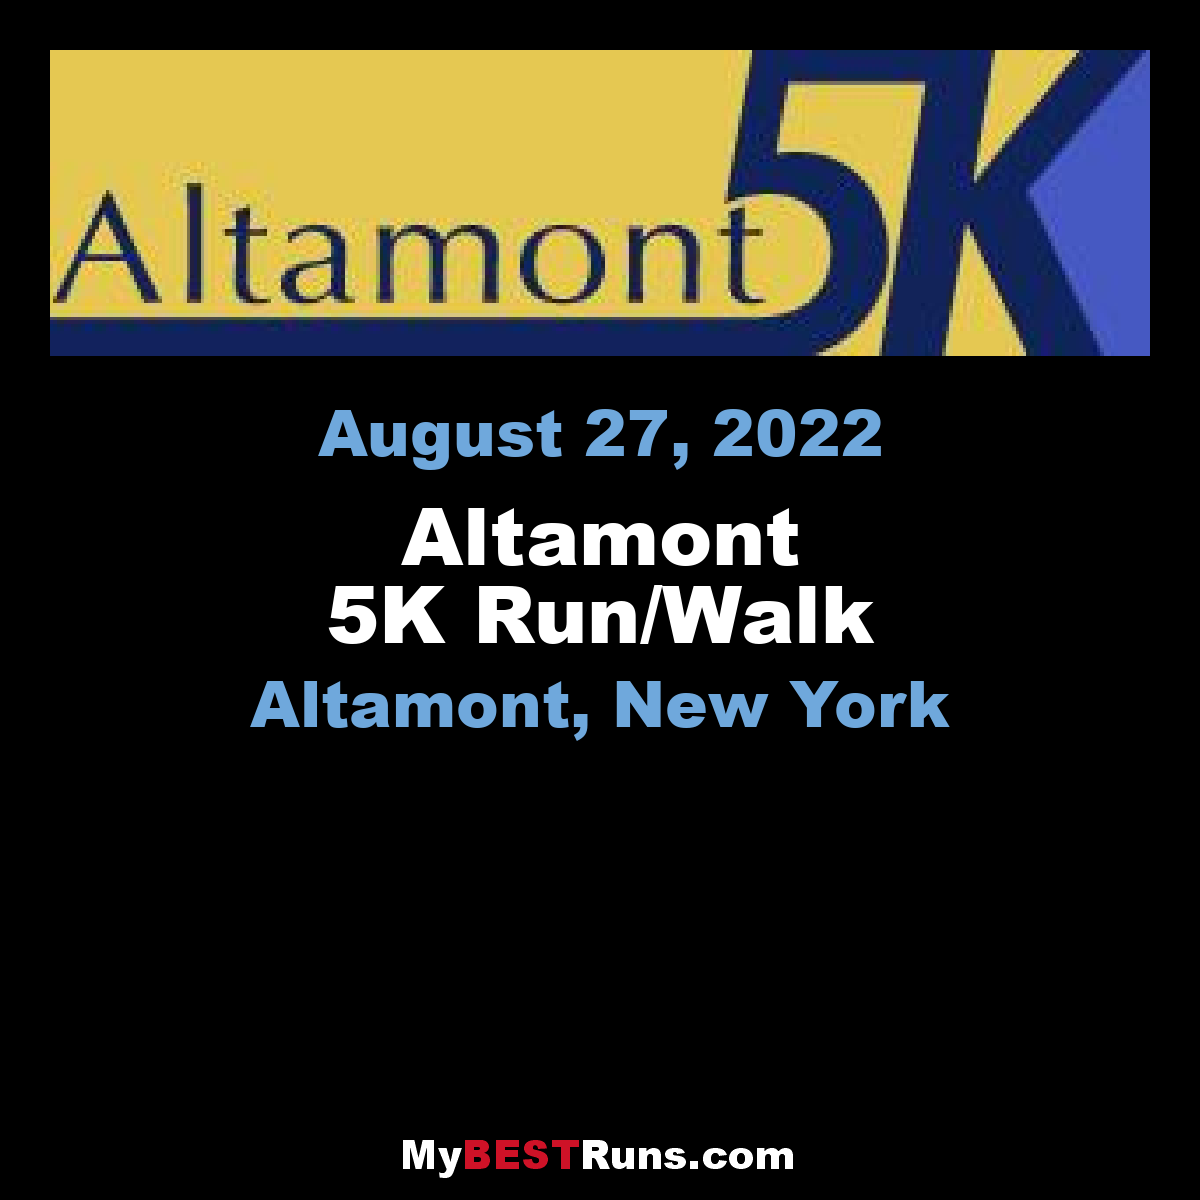 Altamont 5K Run/Walk